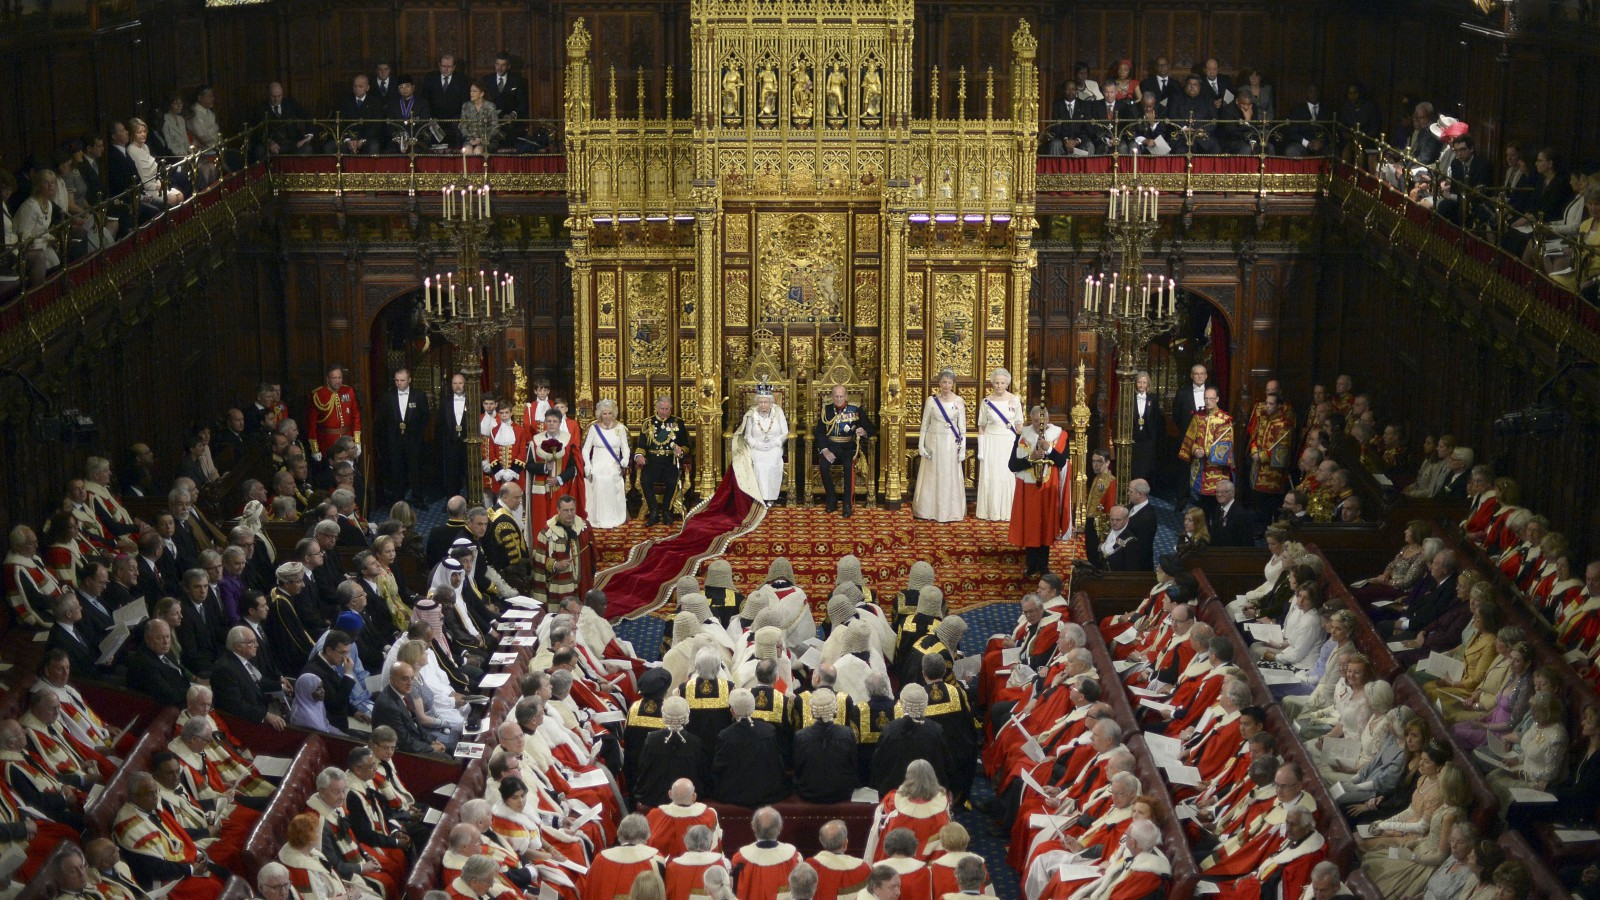 Britain's Queen Elizabeth, centre, prepares to deliver her speech in the House of Lords, during the State Opening of Parliament at the Palace of Westminster in London Wednesday June 4, 2014.  The State Opening of Parliament is an annual pageant of pomp and politics centered on the Queen's Speech, a legislative program written by the government but read out by the monarch before a crowd of lawmakers. Queen Elizabeth sits with her husband Prince Philip, and Prince Charles with Camilla Duchess of Cornwall, centre left. (AP Photo/Carl Court, Pool)